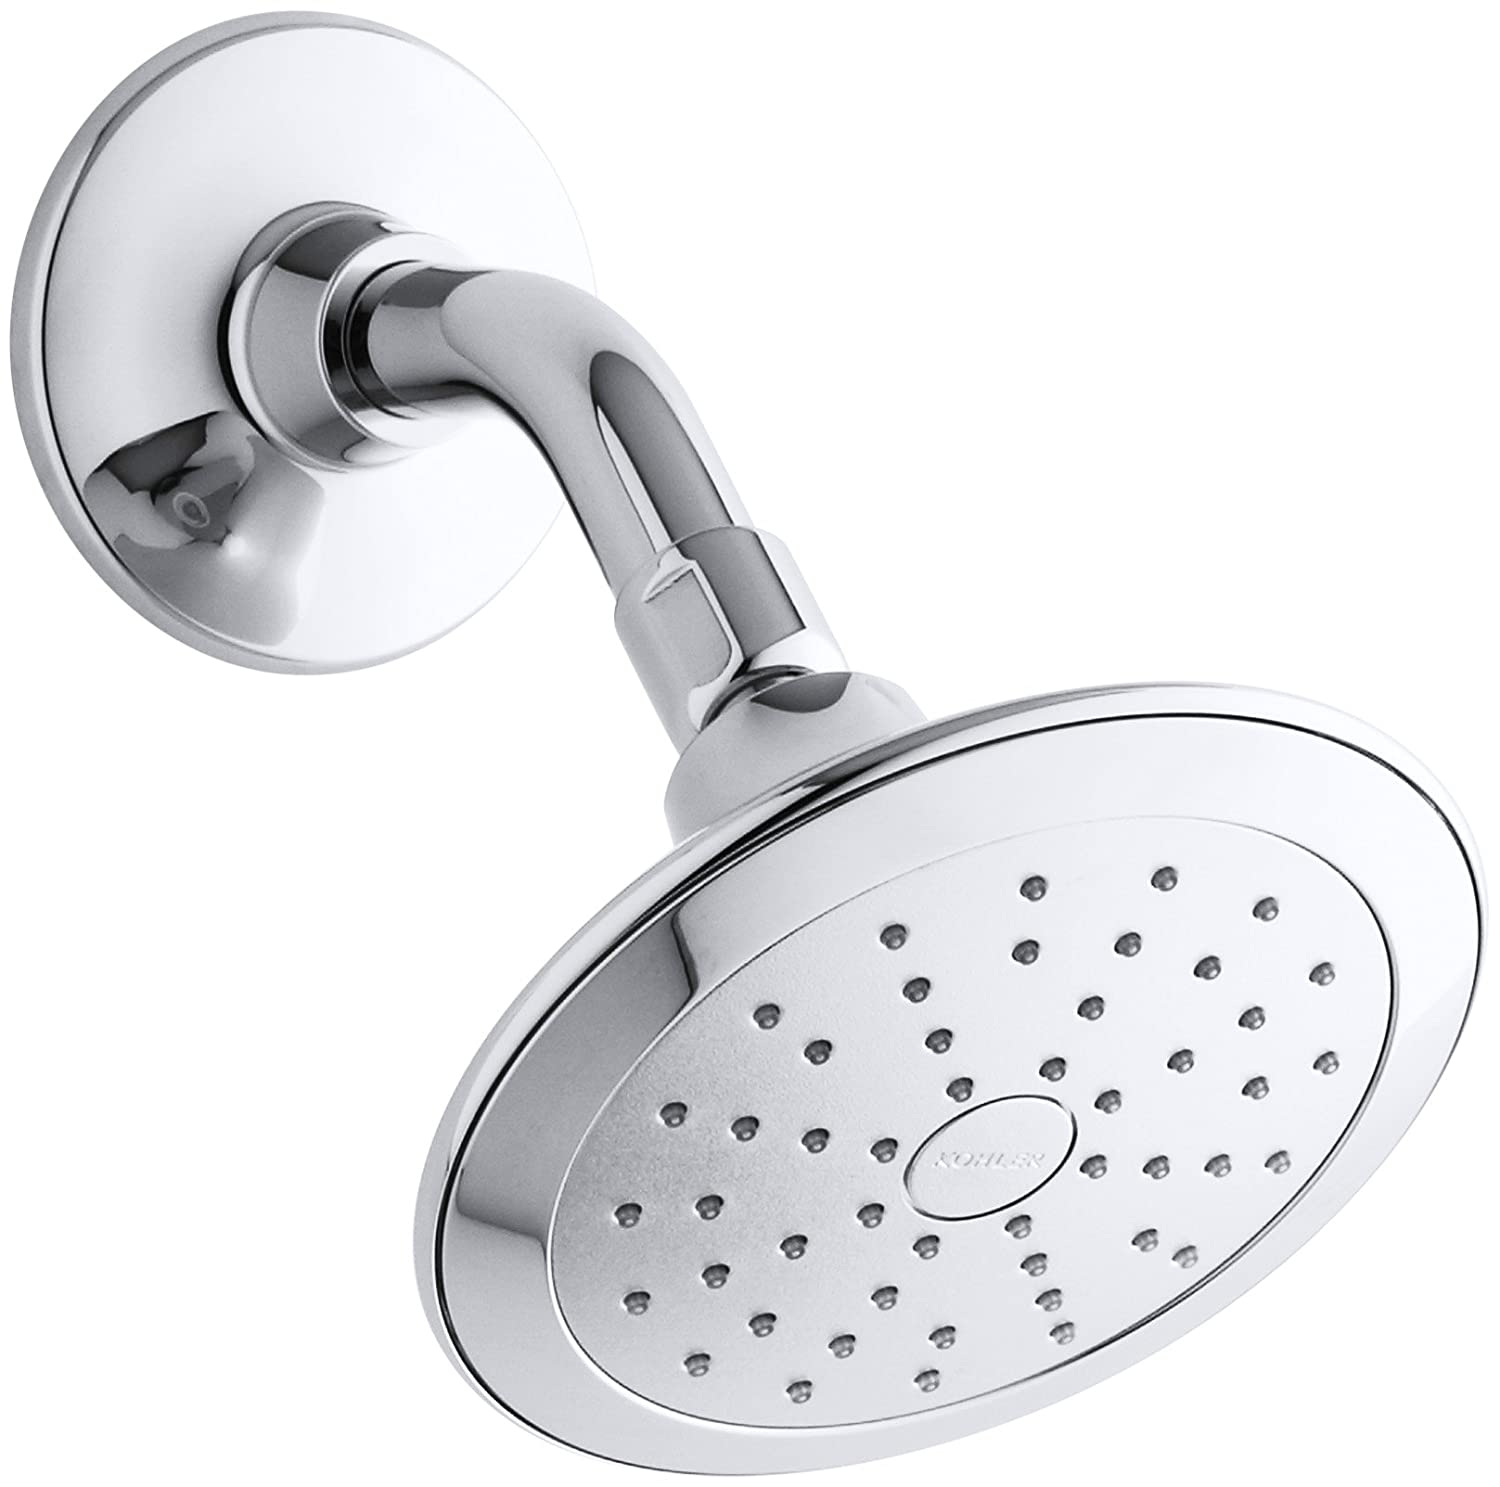 KOHLER 5240-CP Alteo Single Function Wall Mount Showerhead with ...